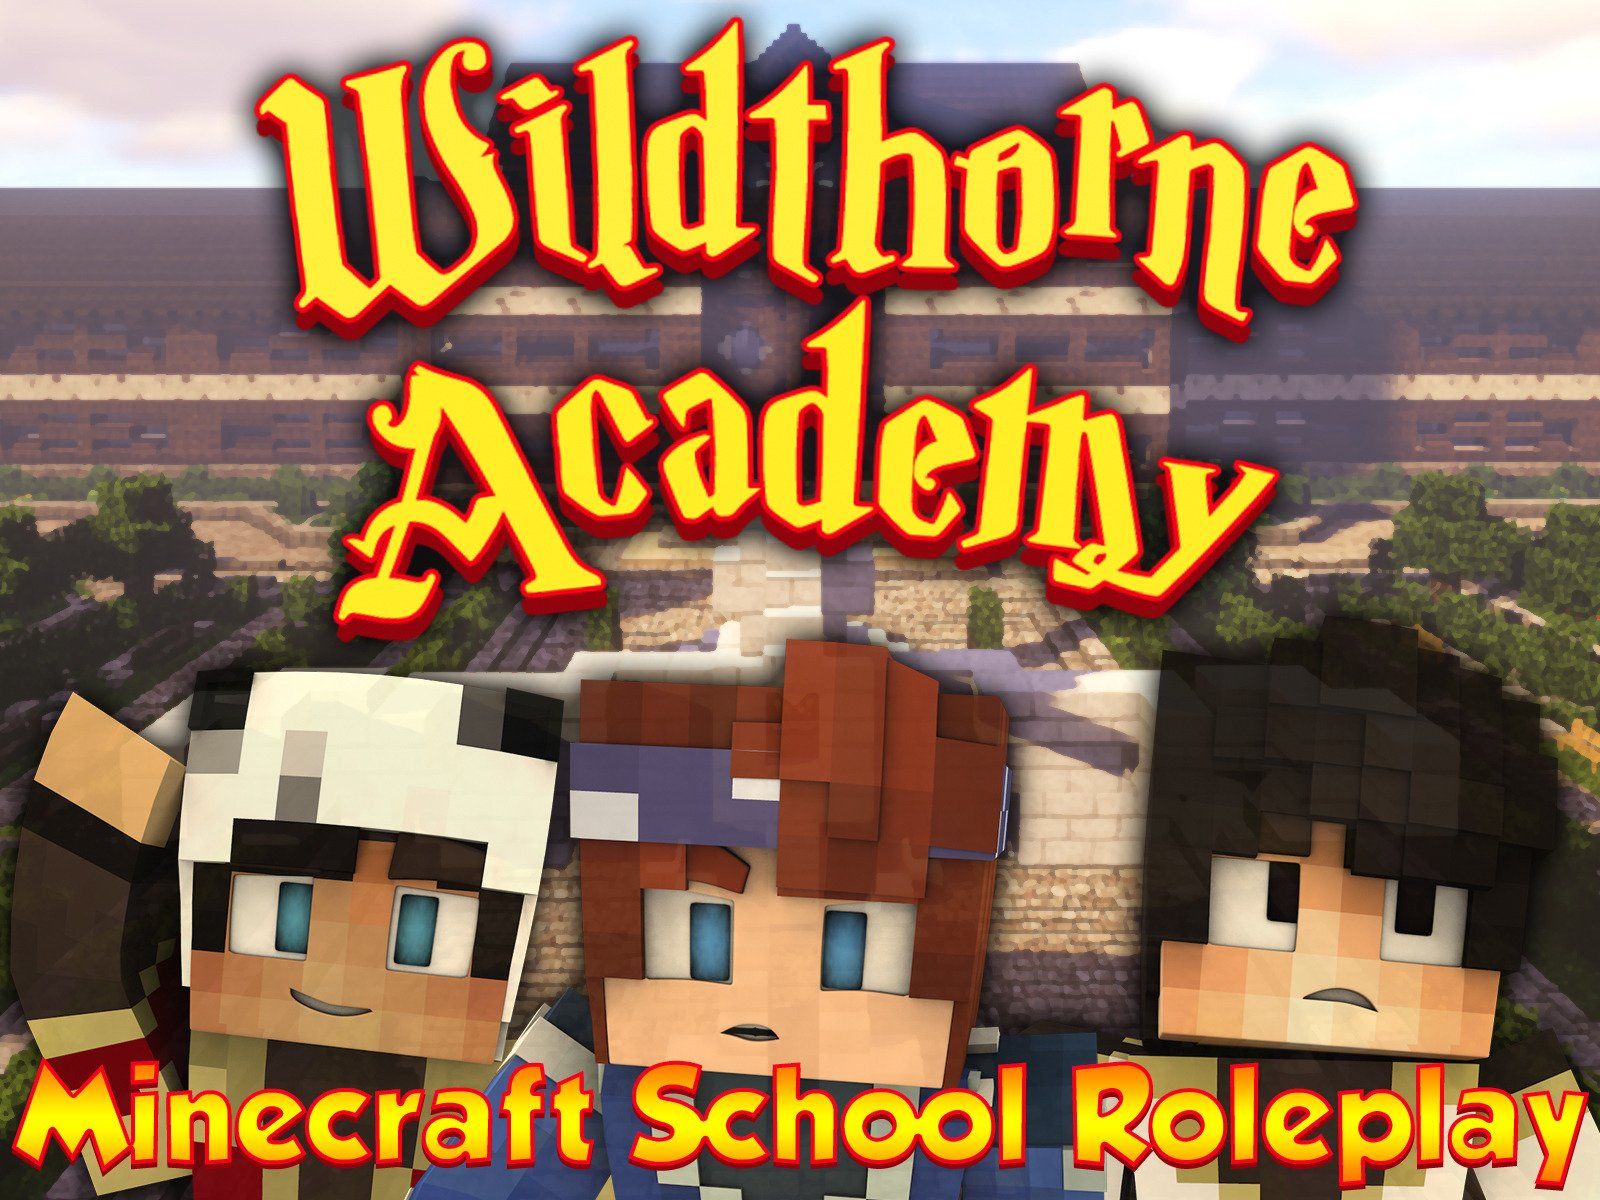 Clip: Wildthorne Academy (Minecraft School Roleplay)